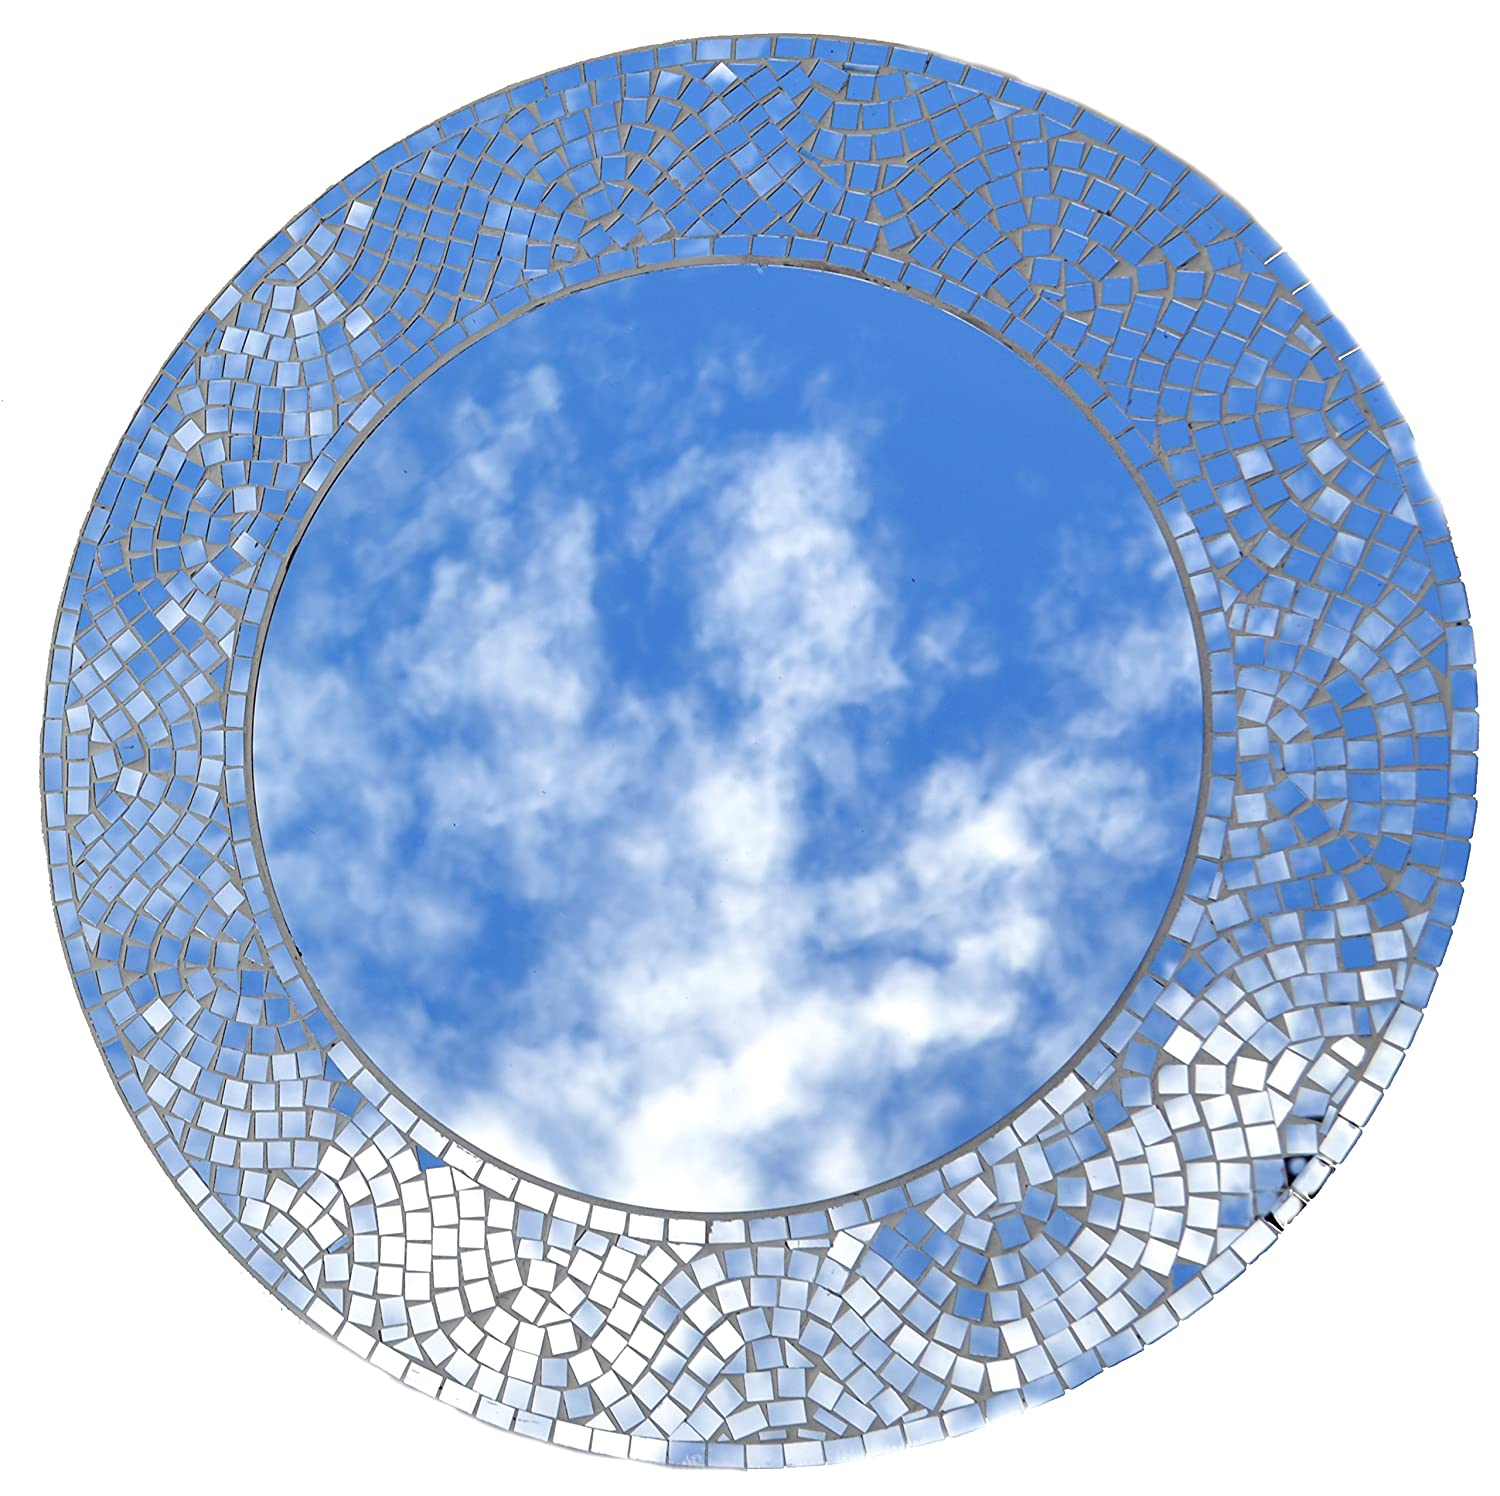 LuLu Decor, Silvershine Mosaic Wall Mirror, Decorative Round Wall Mirror, Diameter 23.5 , Inside Mirror 15 , Perfect for Housewarming Gift LP303